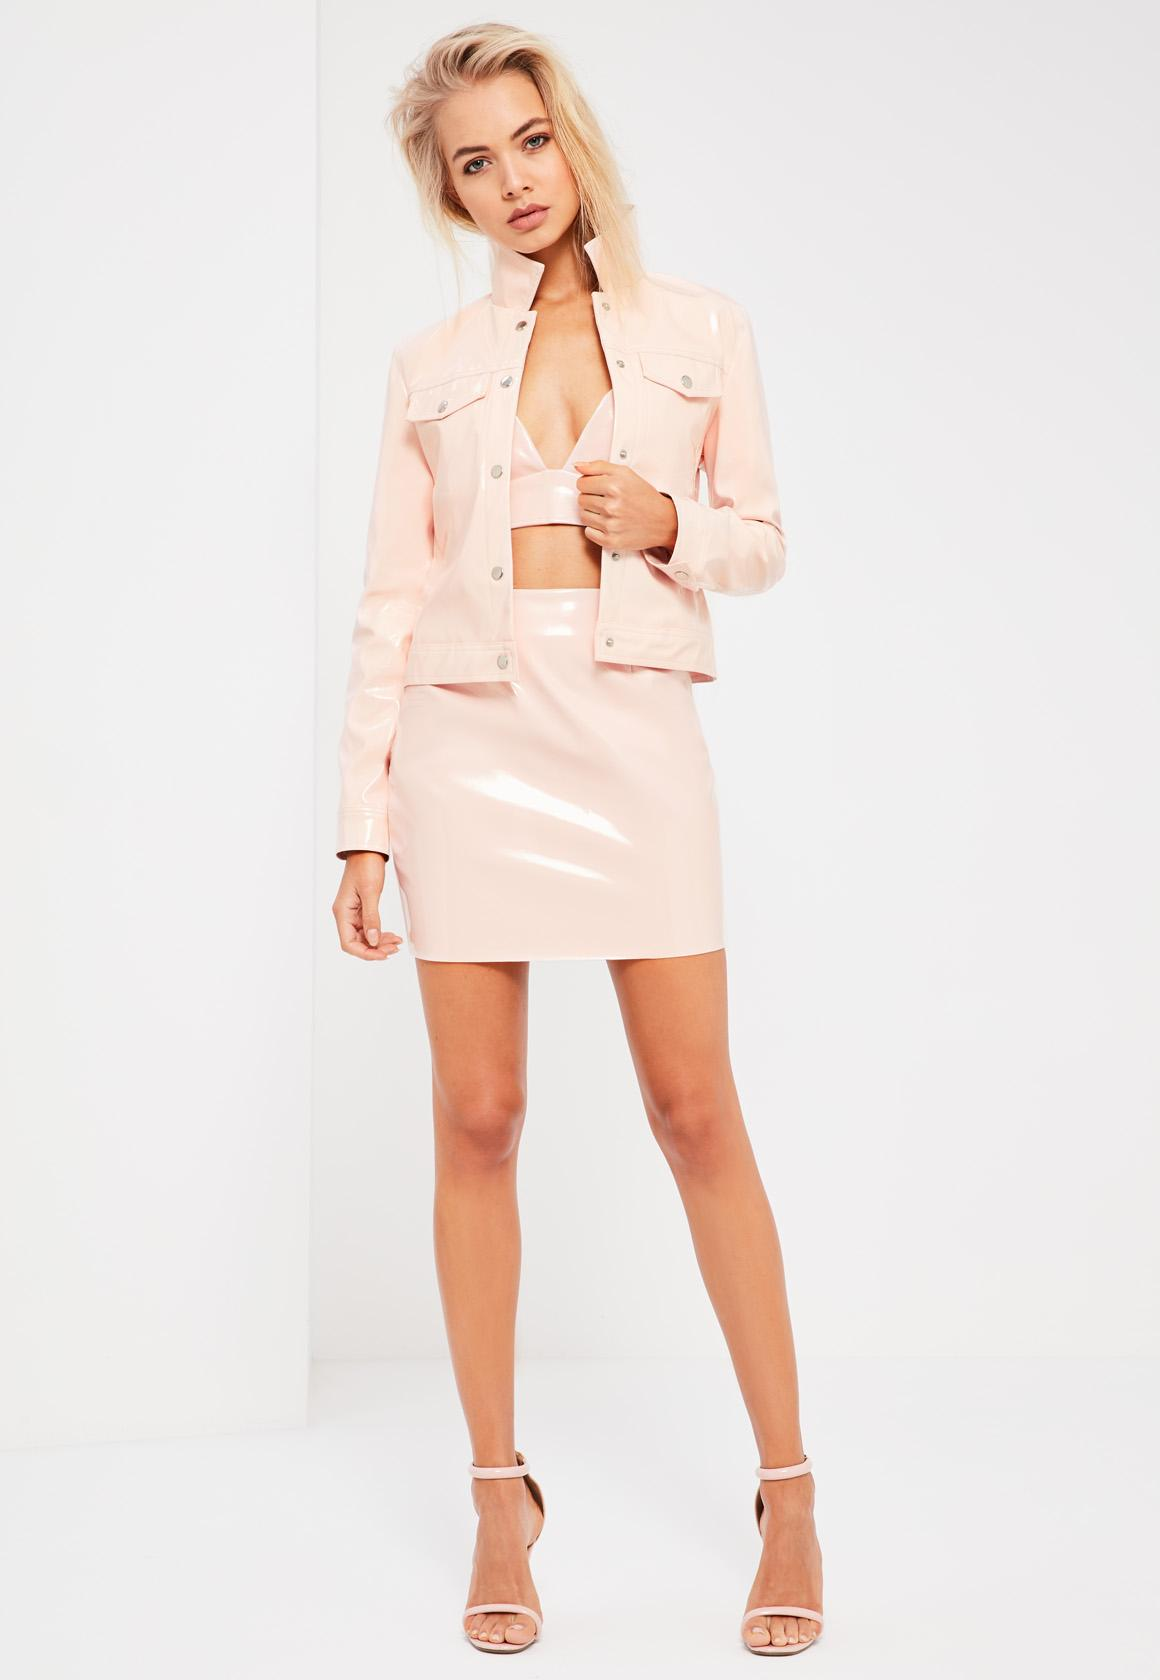 Galore Pink Patent Faux Leather Mini Skirt - Missguided